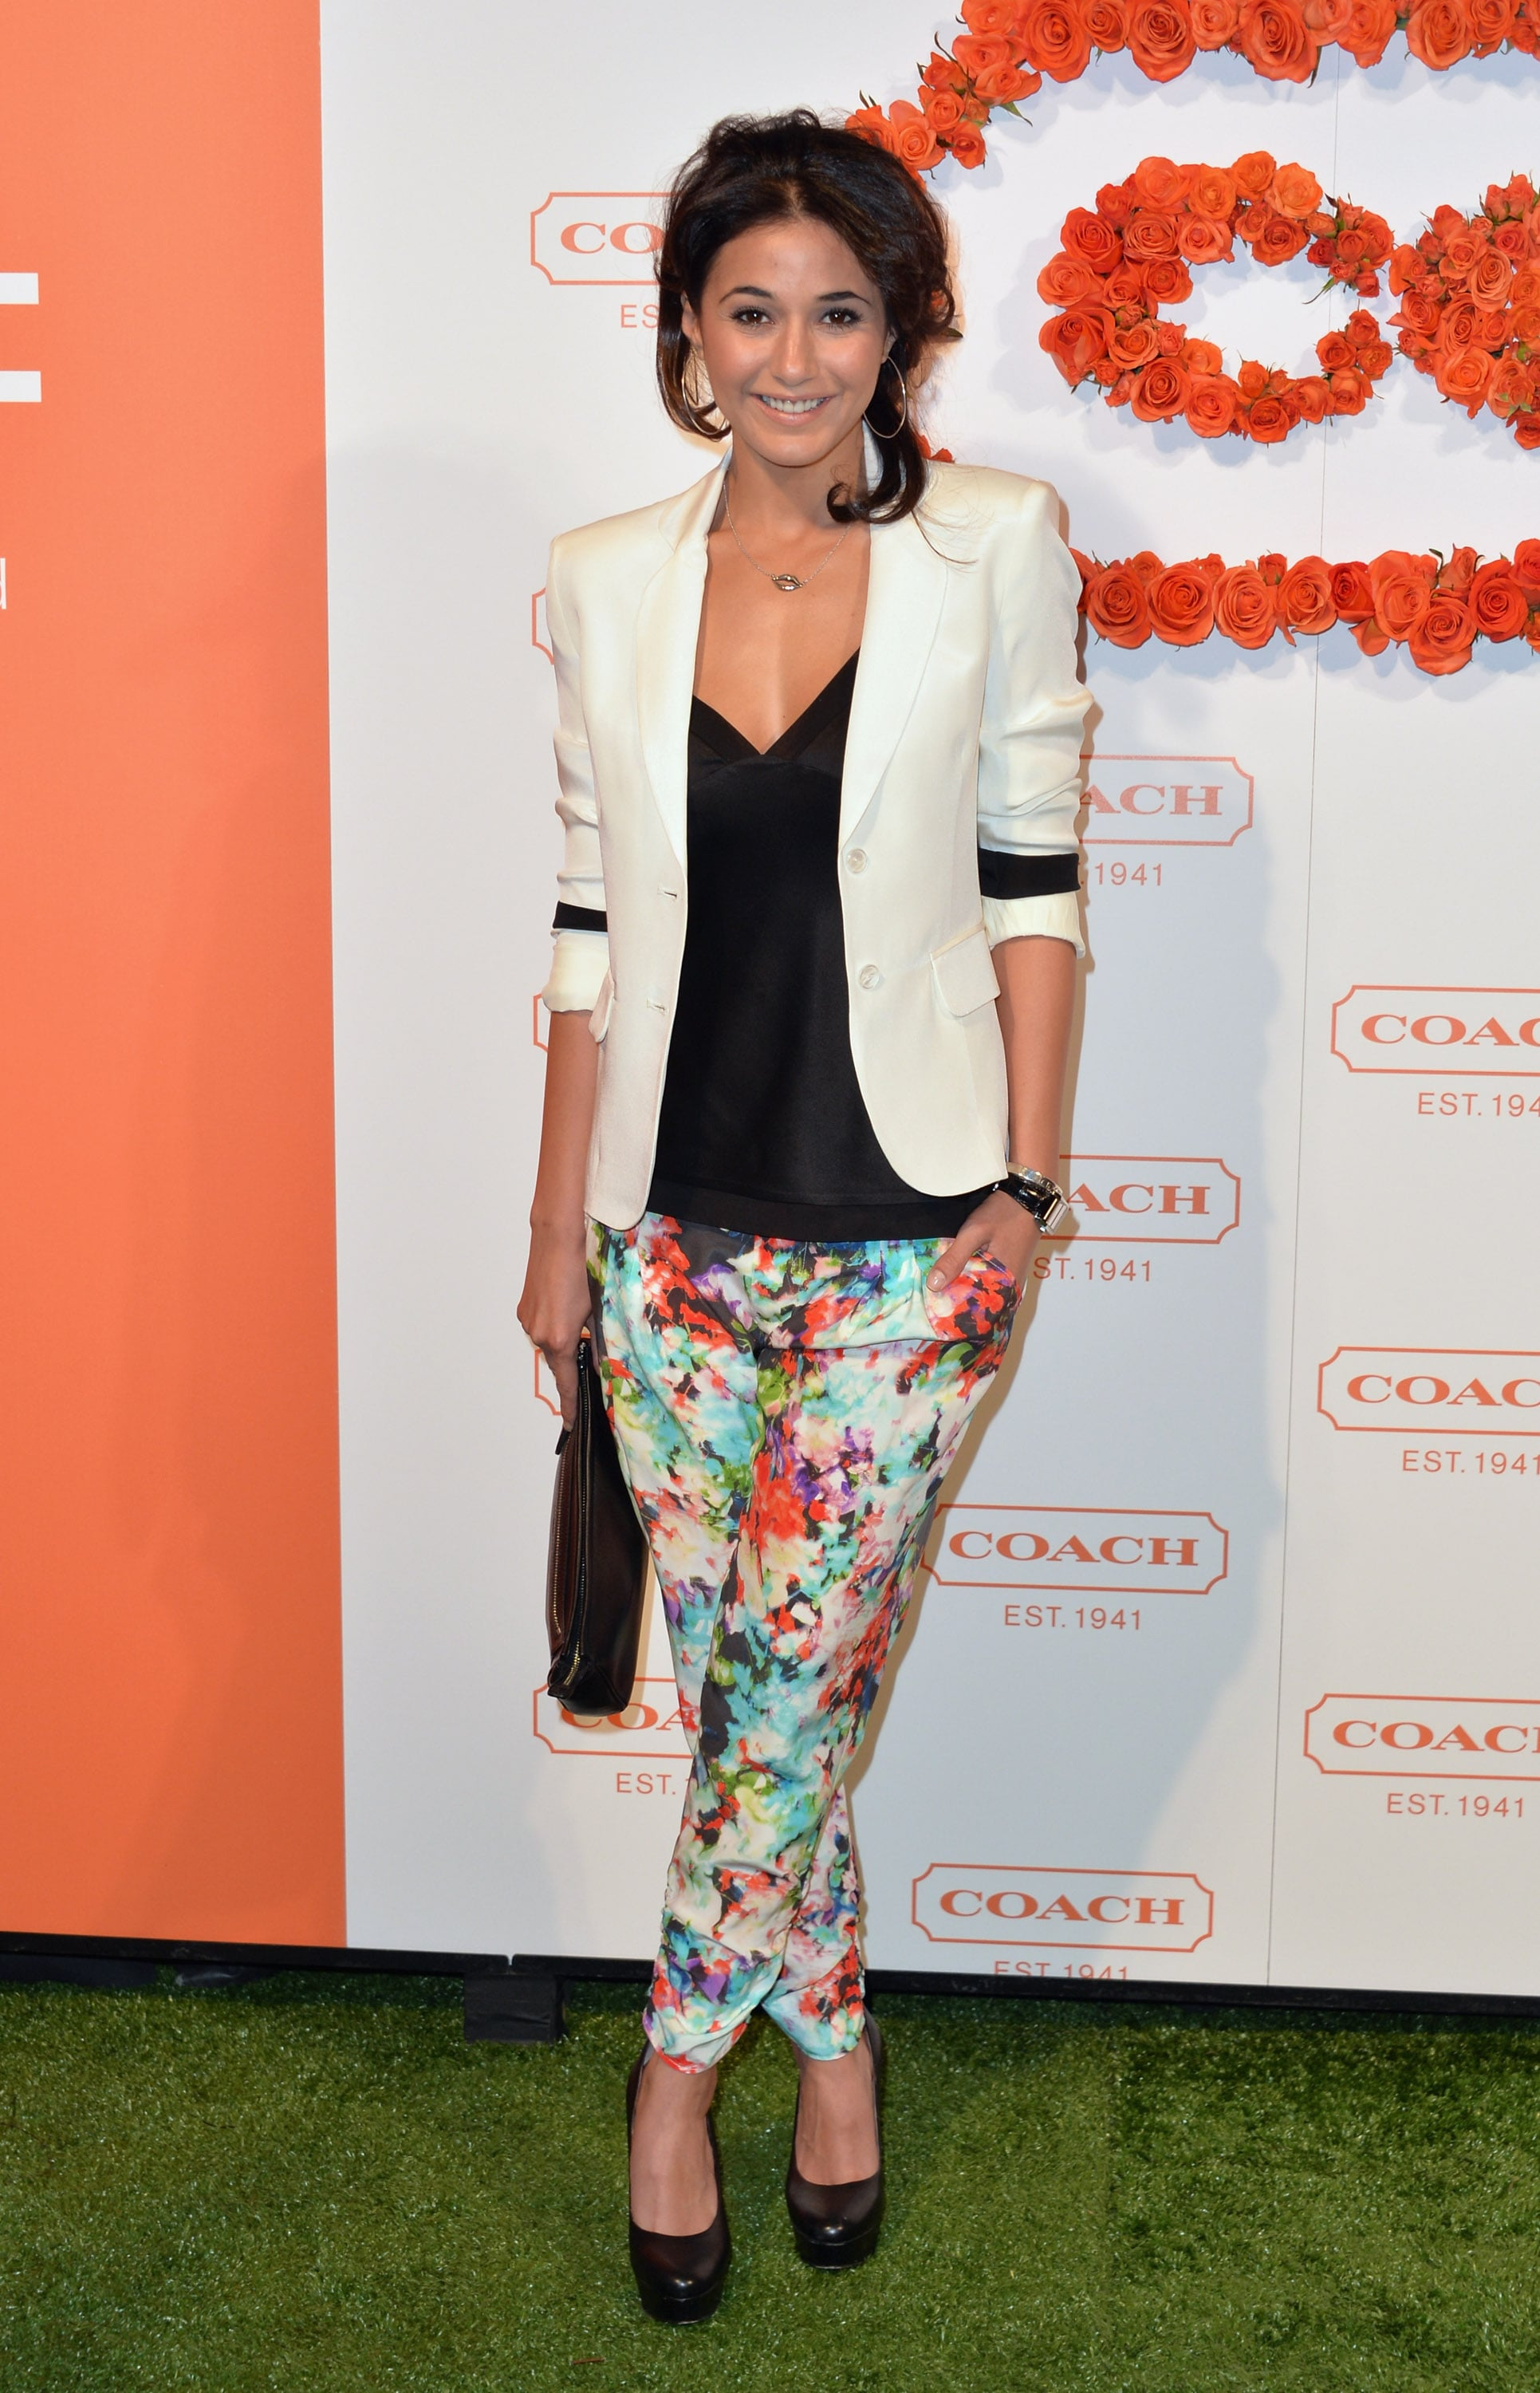 Emmanuelle Chriqui paired floral trousers with a tailored white blazer and black accessories at the Coach event.